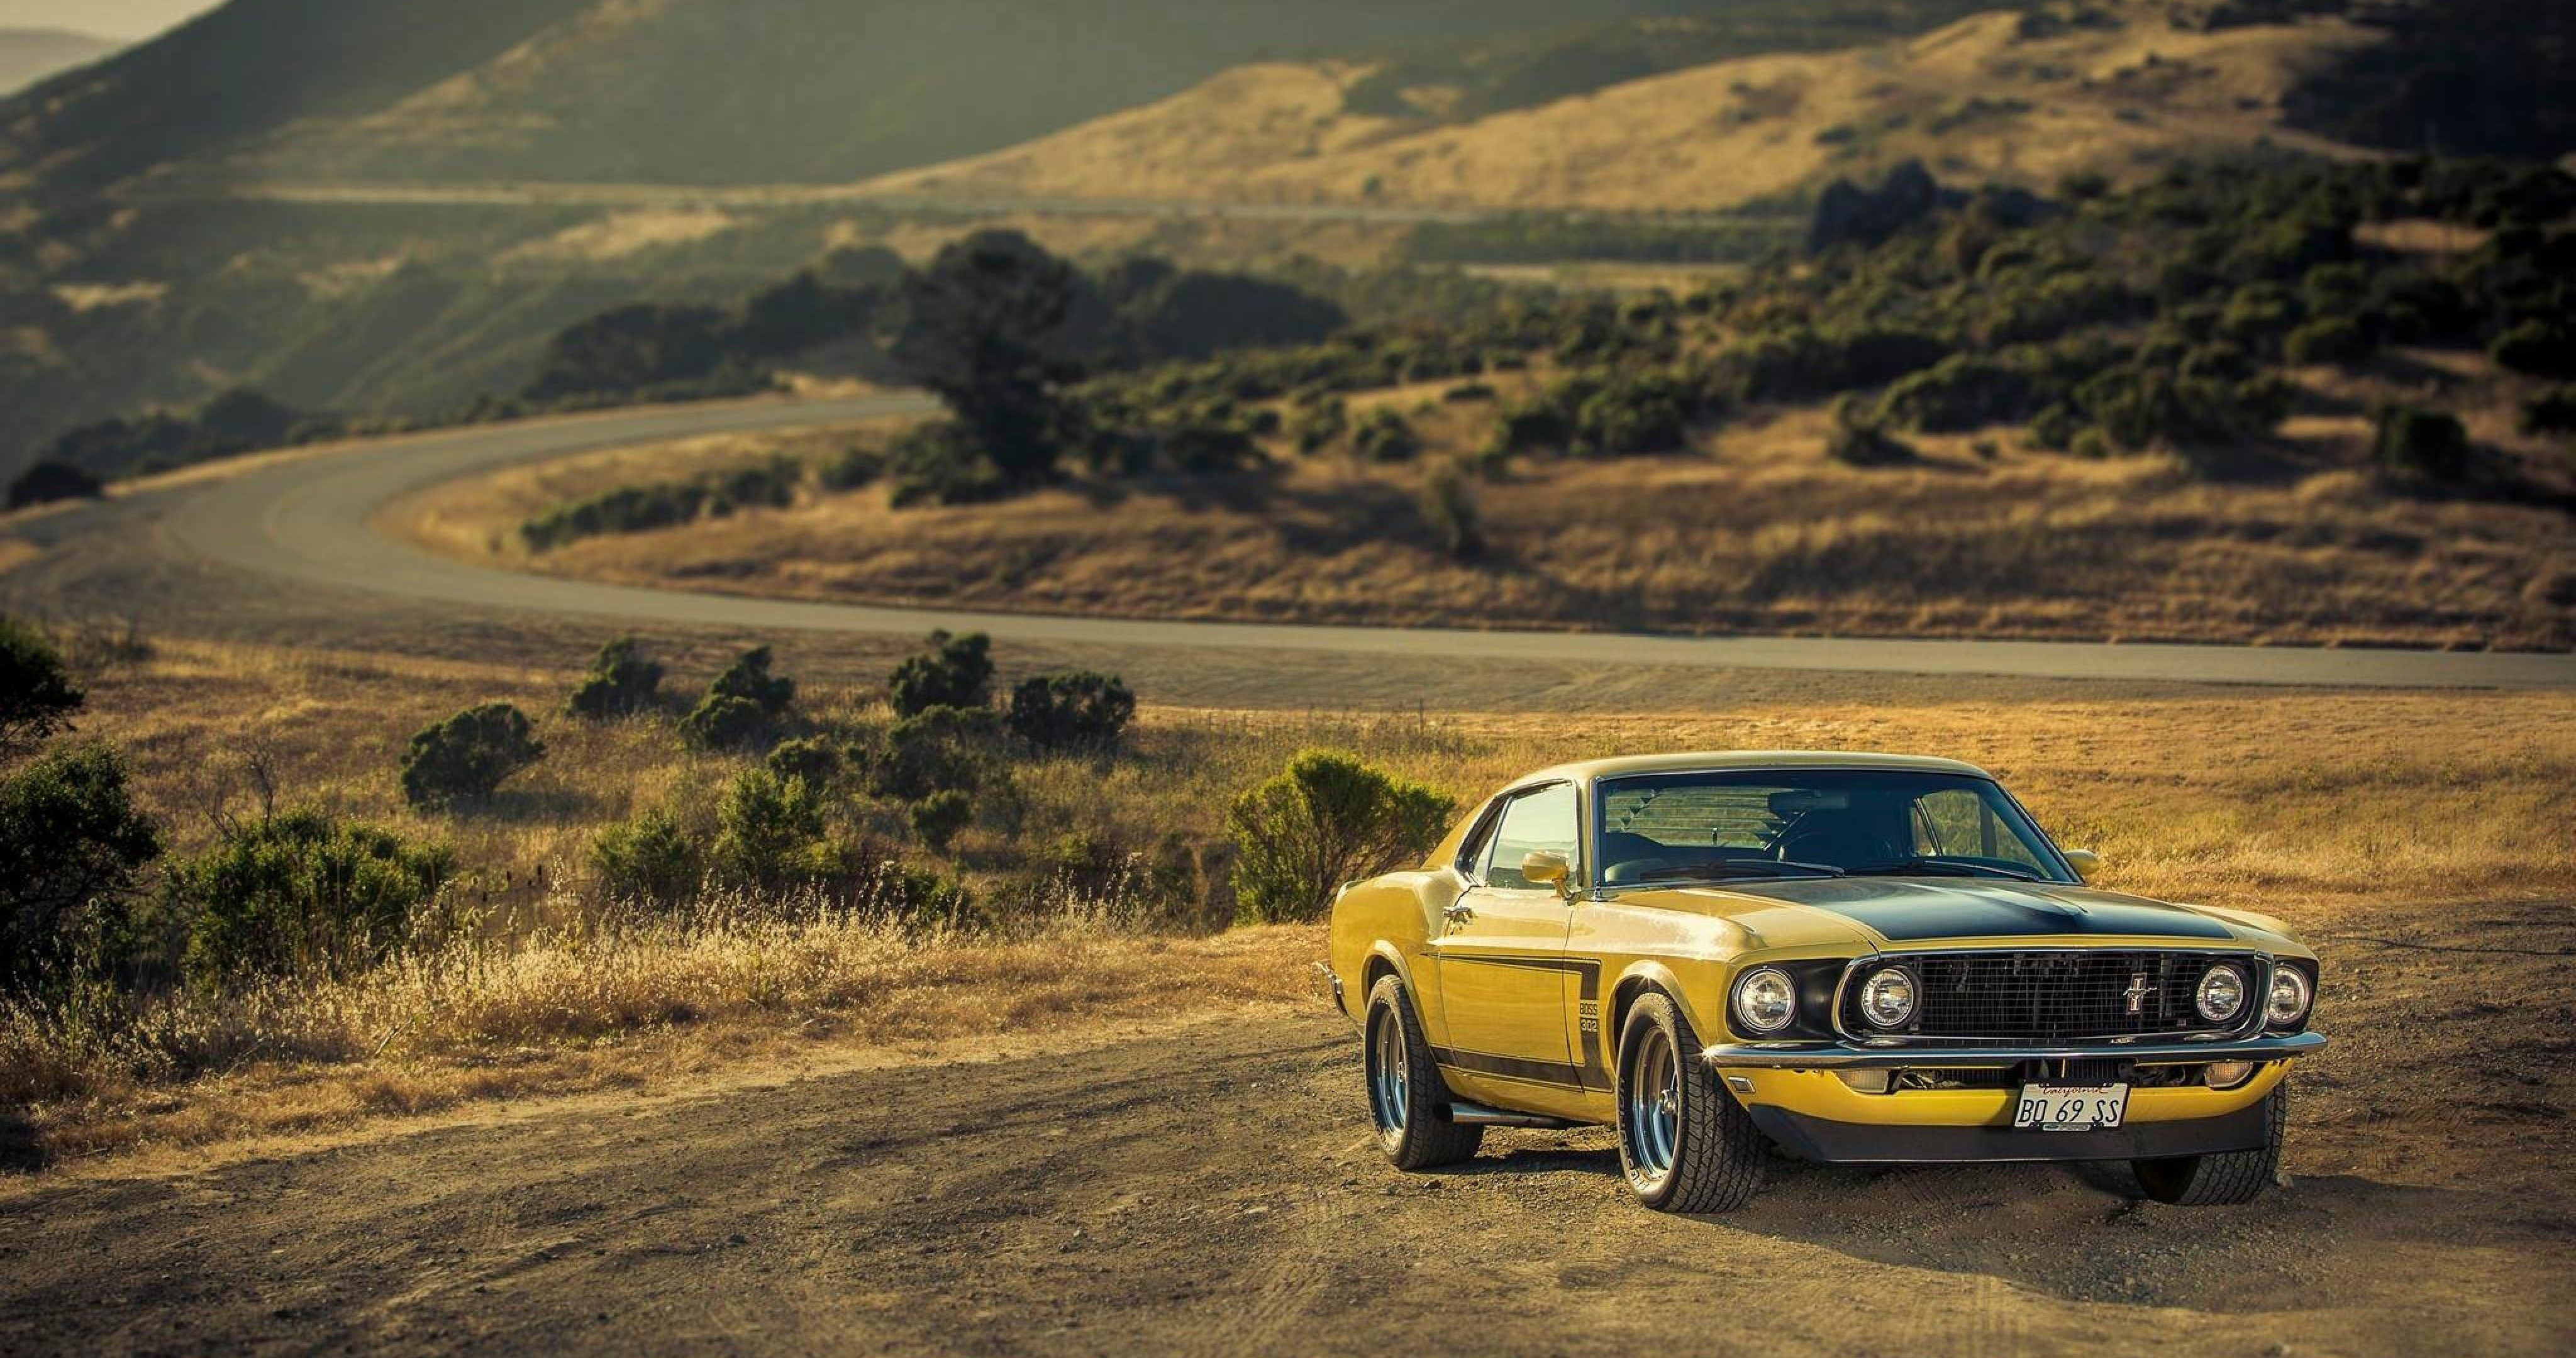 Ford mustang boss 302 4k ultra hd wallpaper